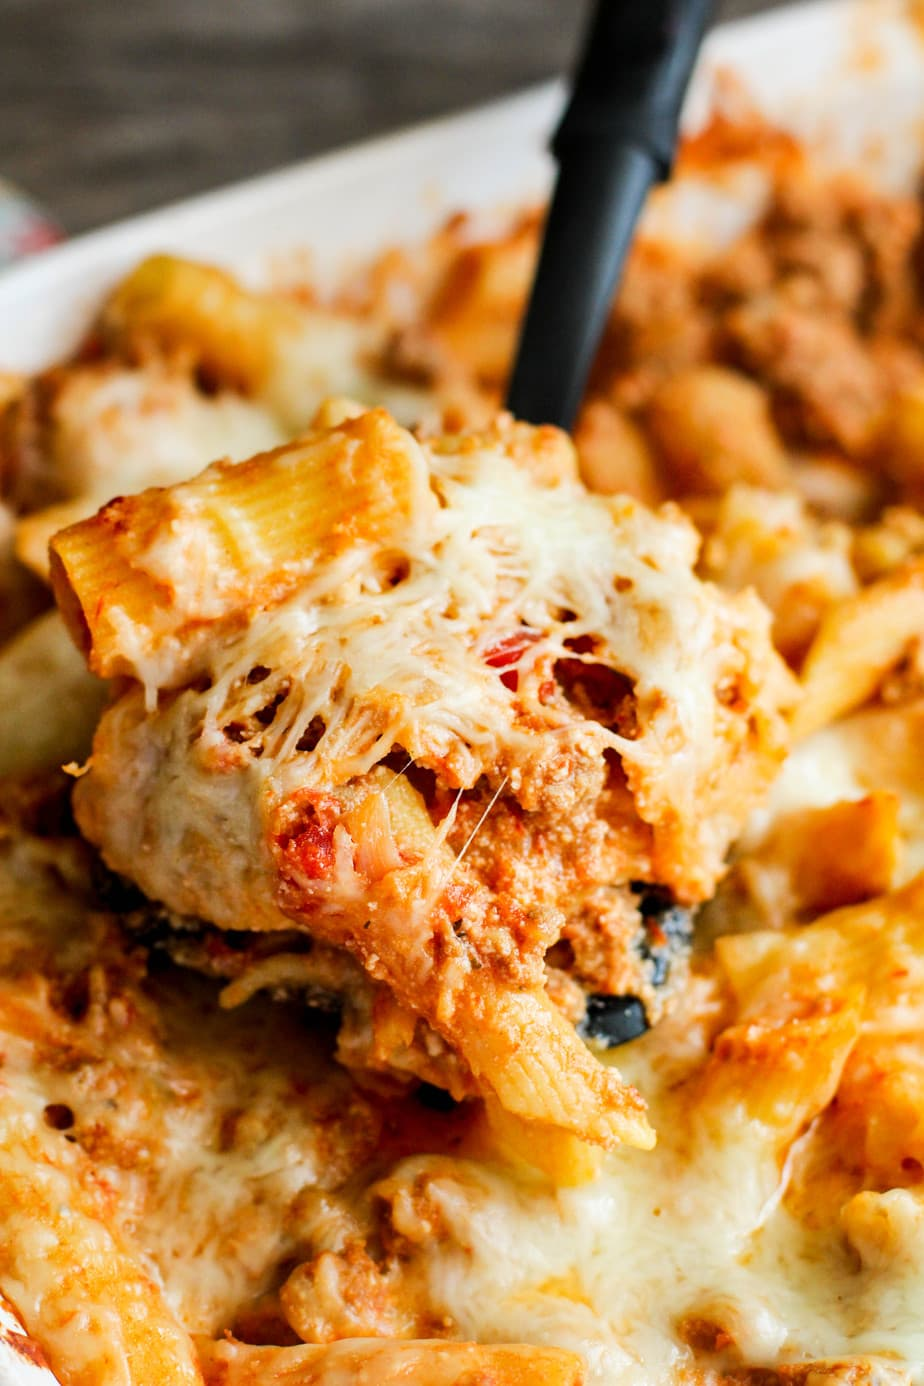 cheesy baked pasta being held by a spoon